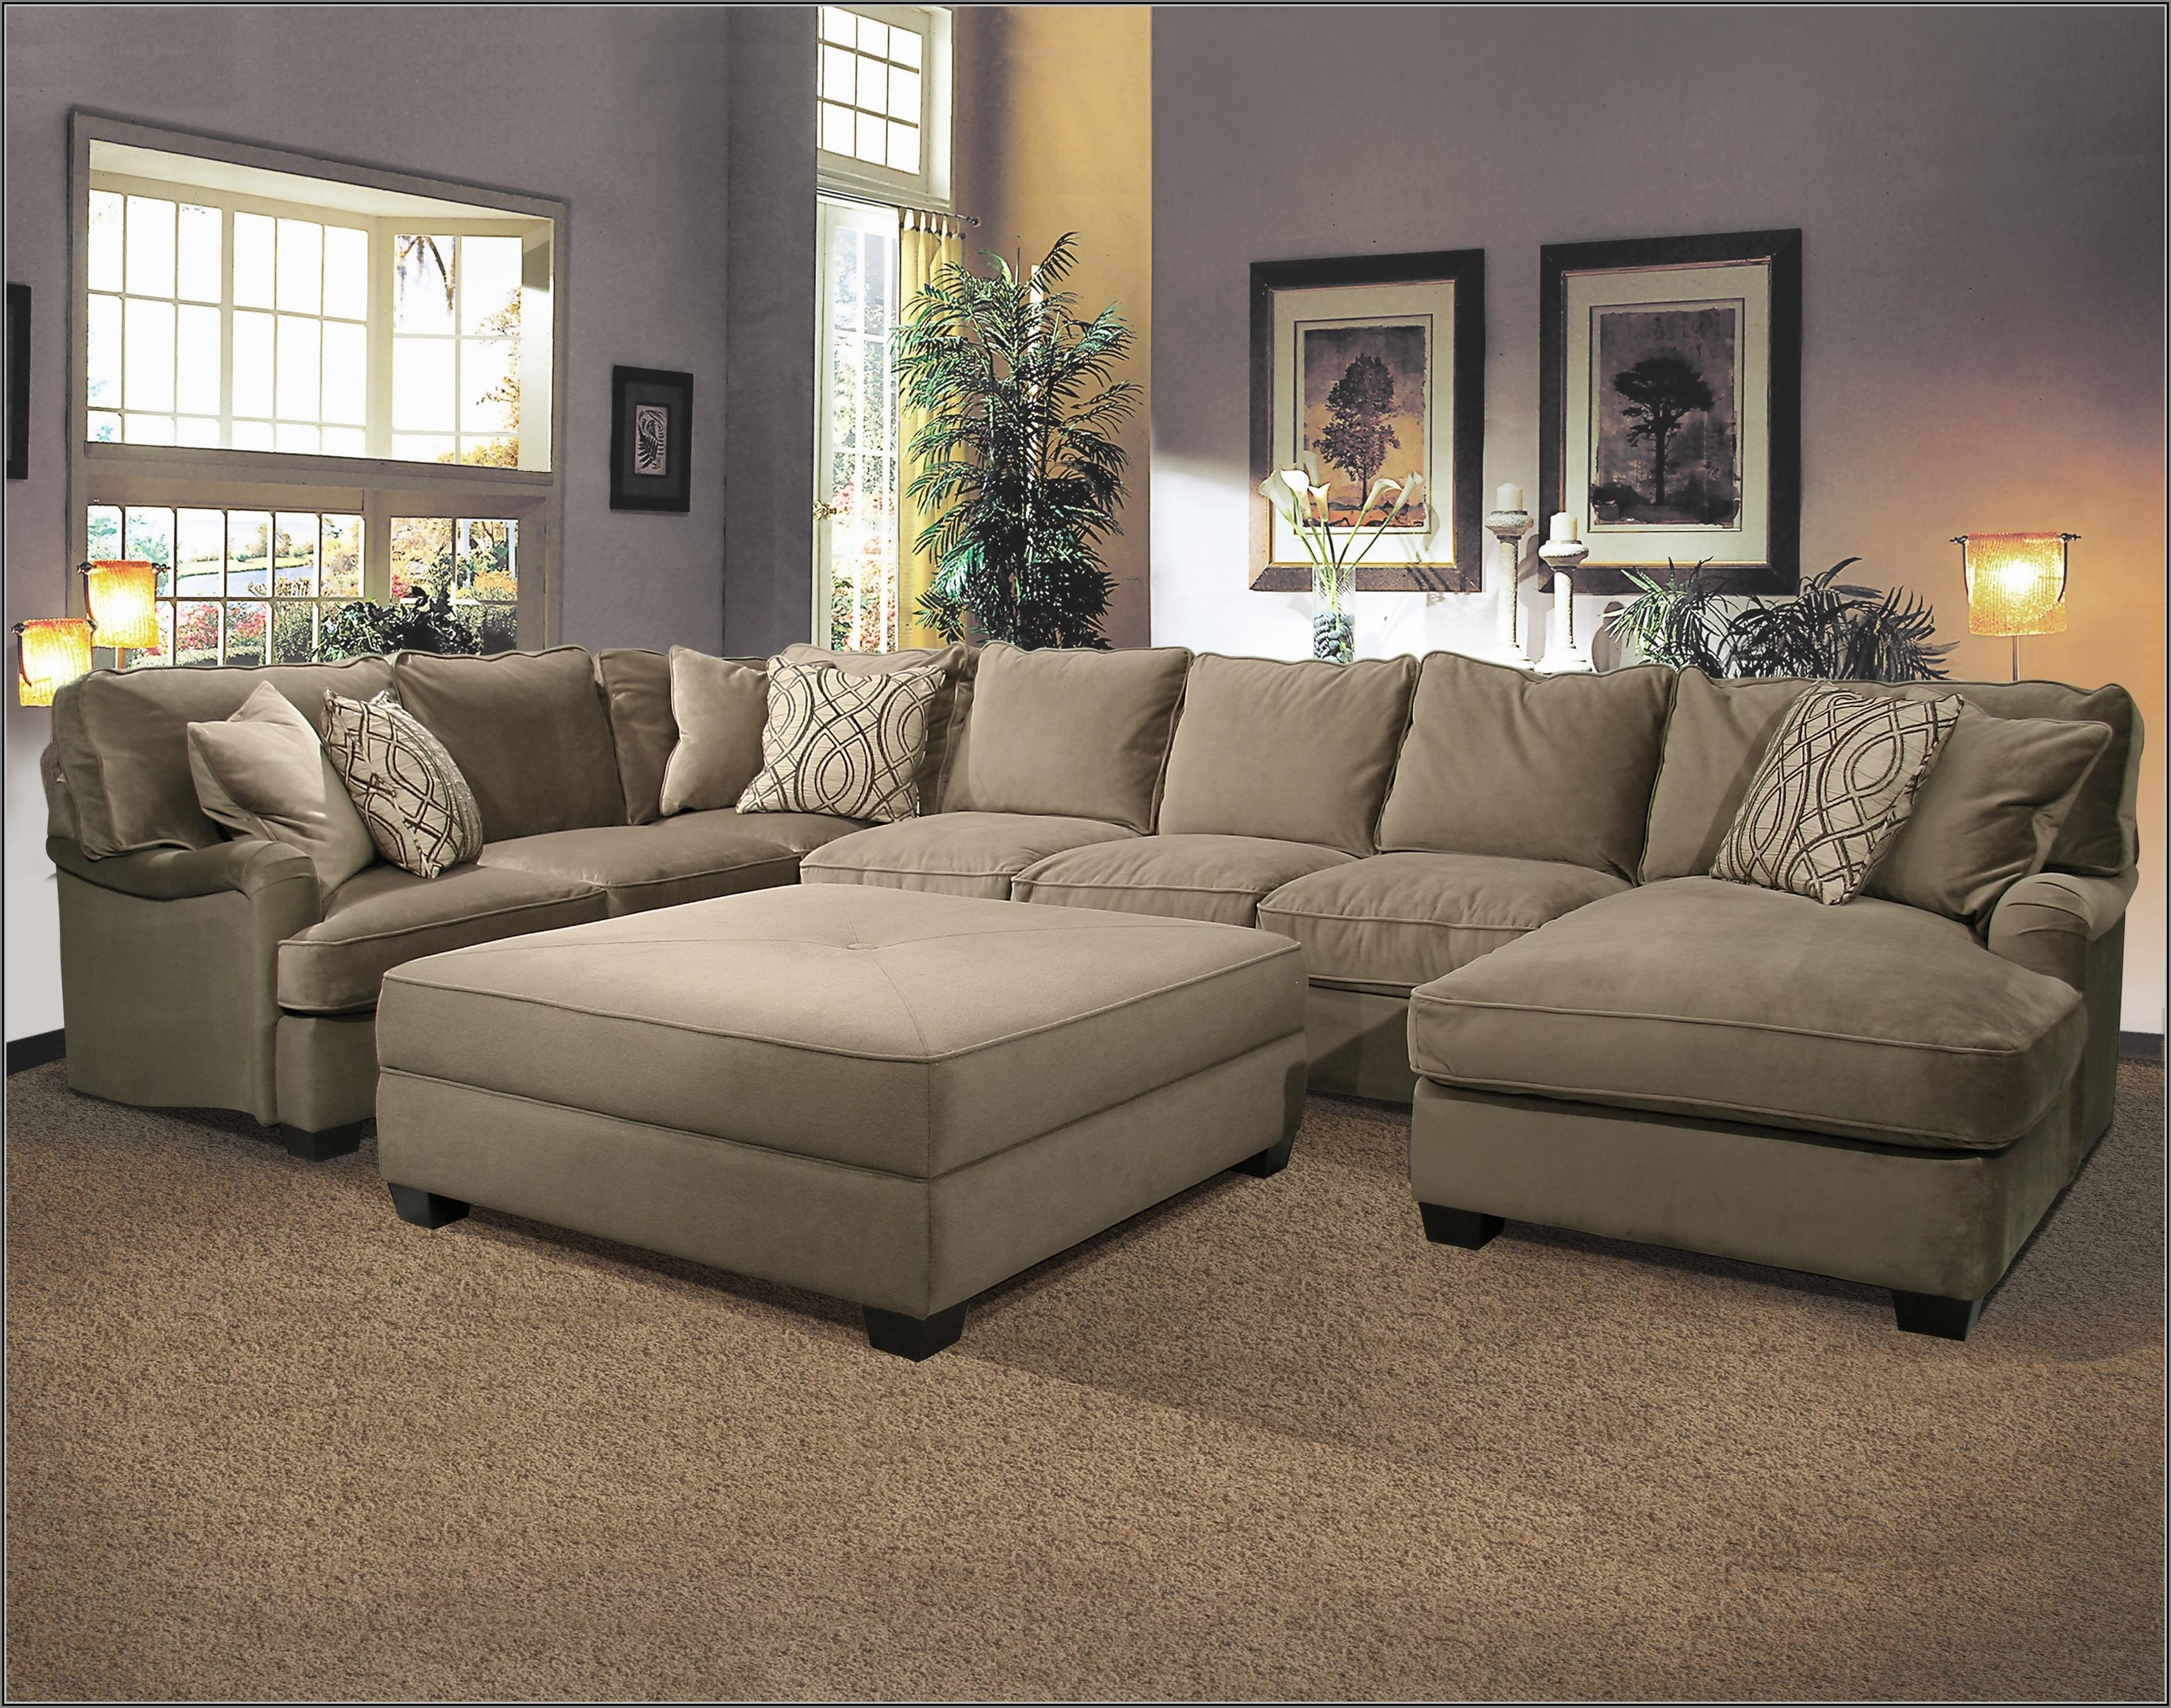 Sectional Sofath Oversized Ottoman Chenille Fabric Matching Pertaining To Sectional Sofas With Oversized Ottoman (View 12 of 15)